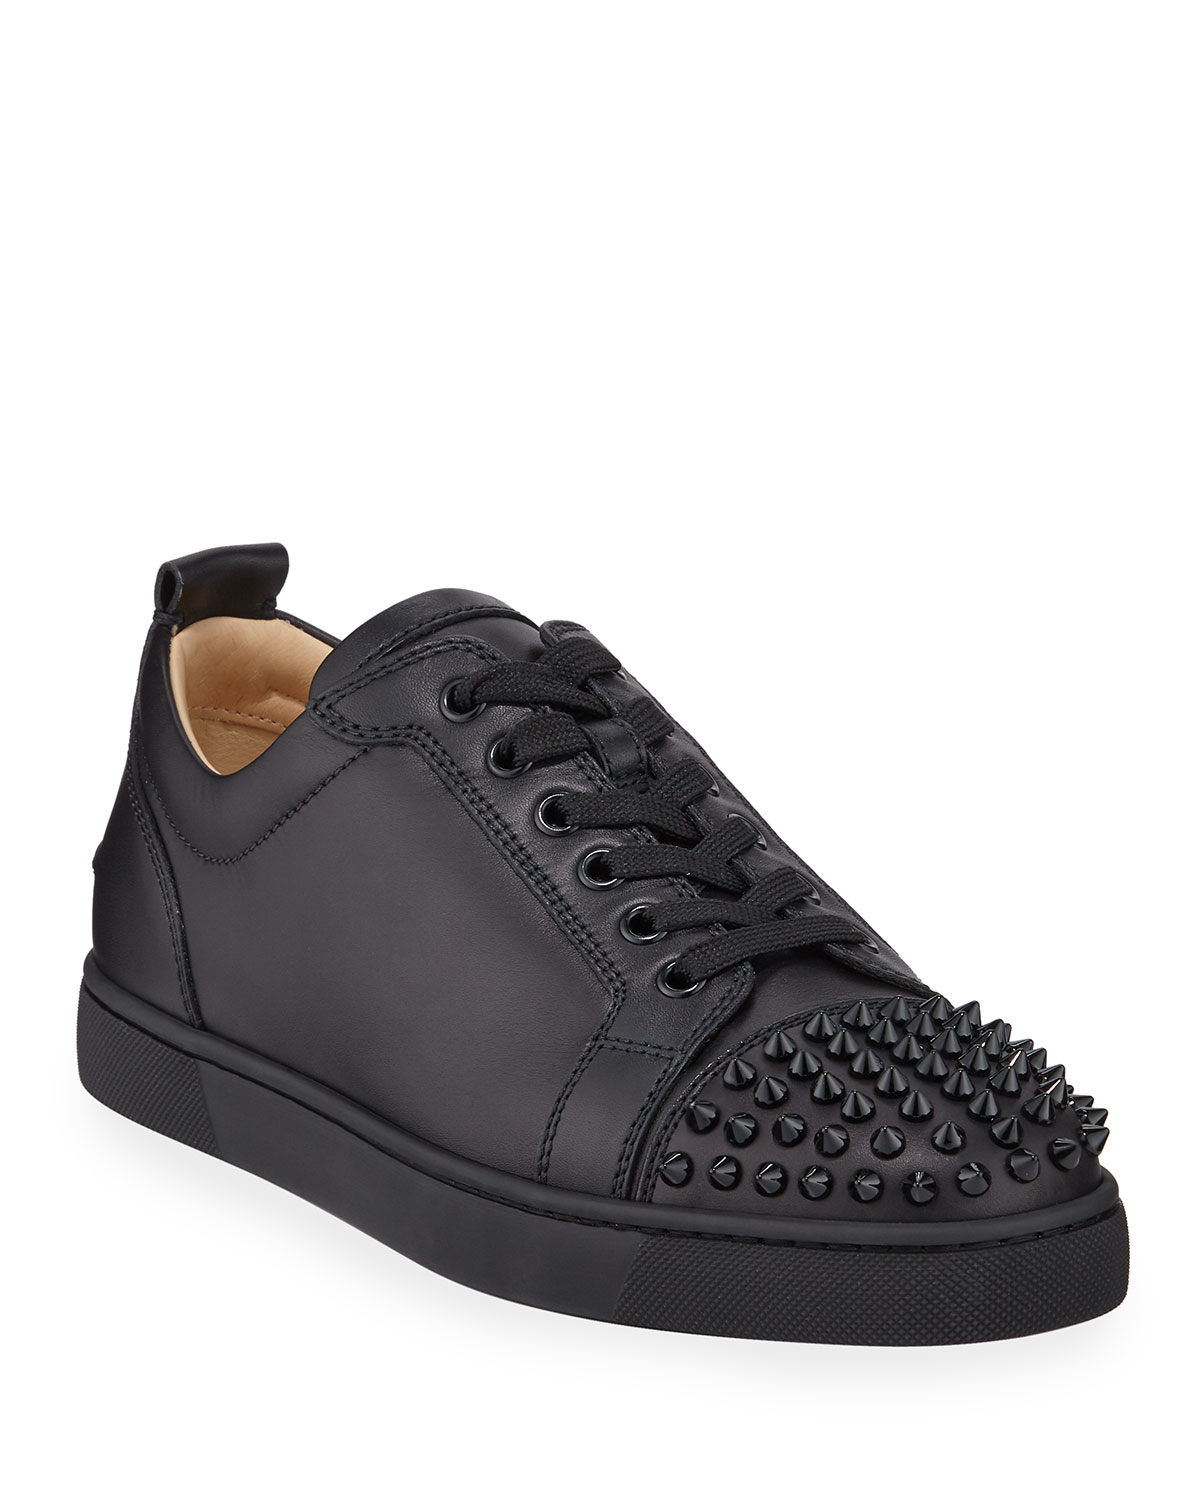 new arrival 3b9c7 8afd1 Men's Louis Junior Spiked Low-Top Sneakers